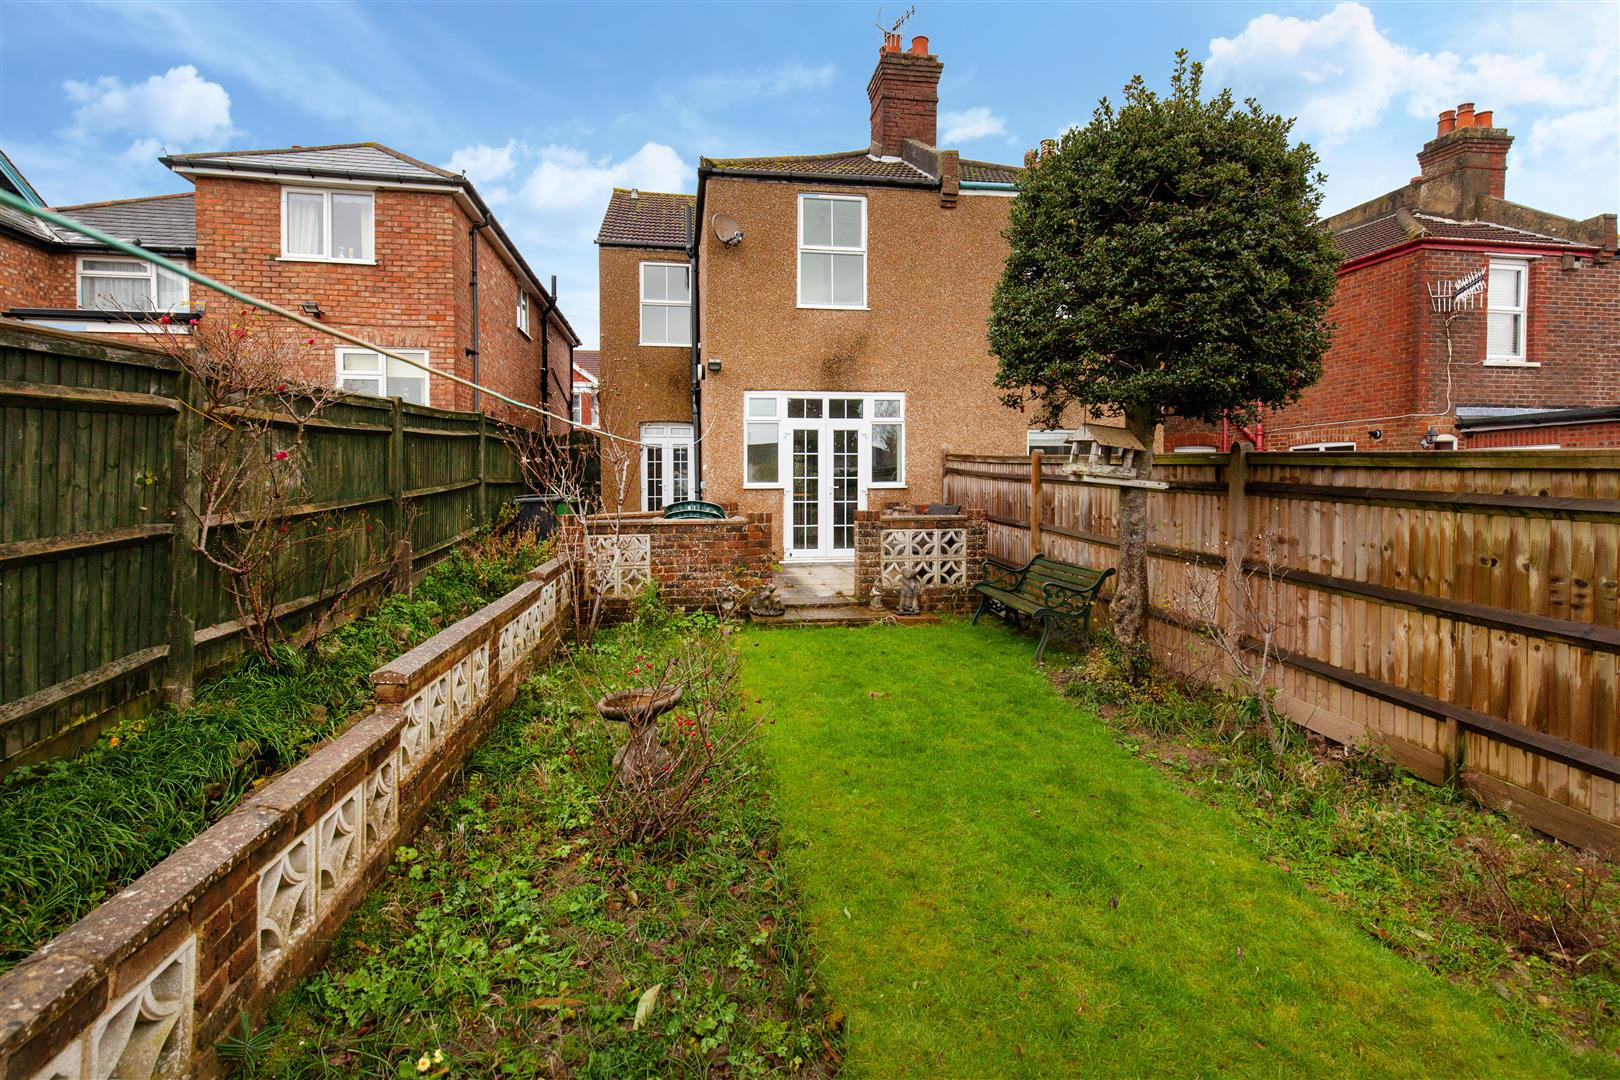 3 bed end-of-terrace-house for sale in Burry Road, St. Leonards-On-Sea 20